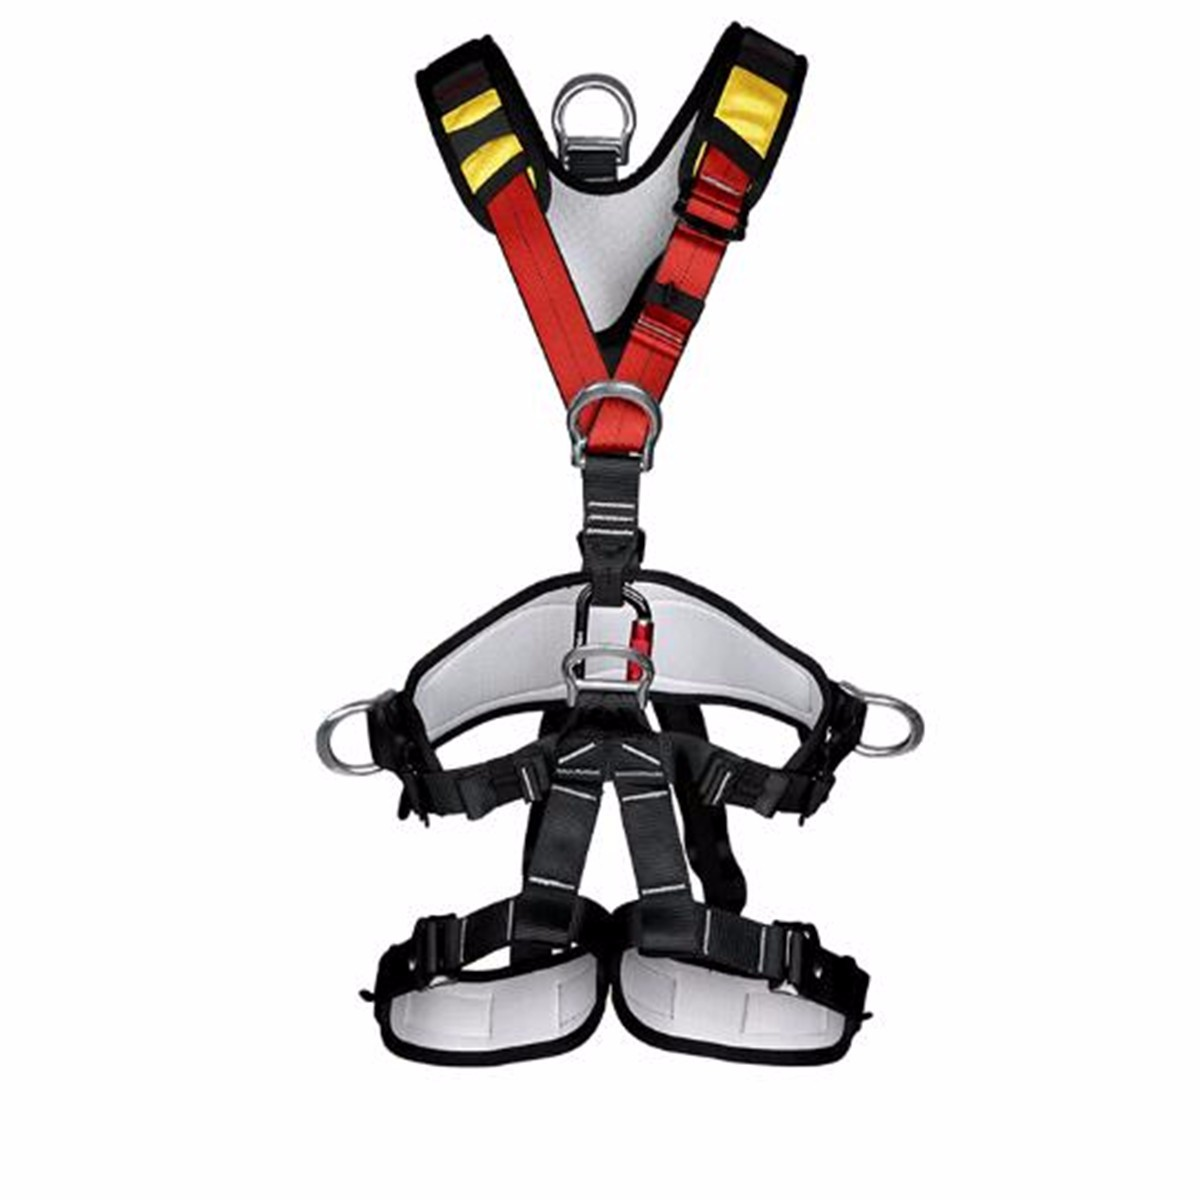 Safurance Outdoor Rappelling Full Body Safety Harness Wearing Seat Belt Sitting Bust Protection Gear Workplace Safety miller titan by honeywell ac qc xsbl aircore full body harness x small blue